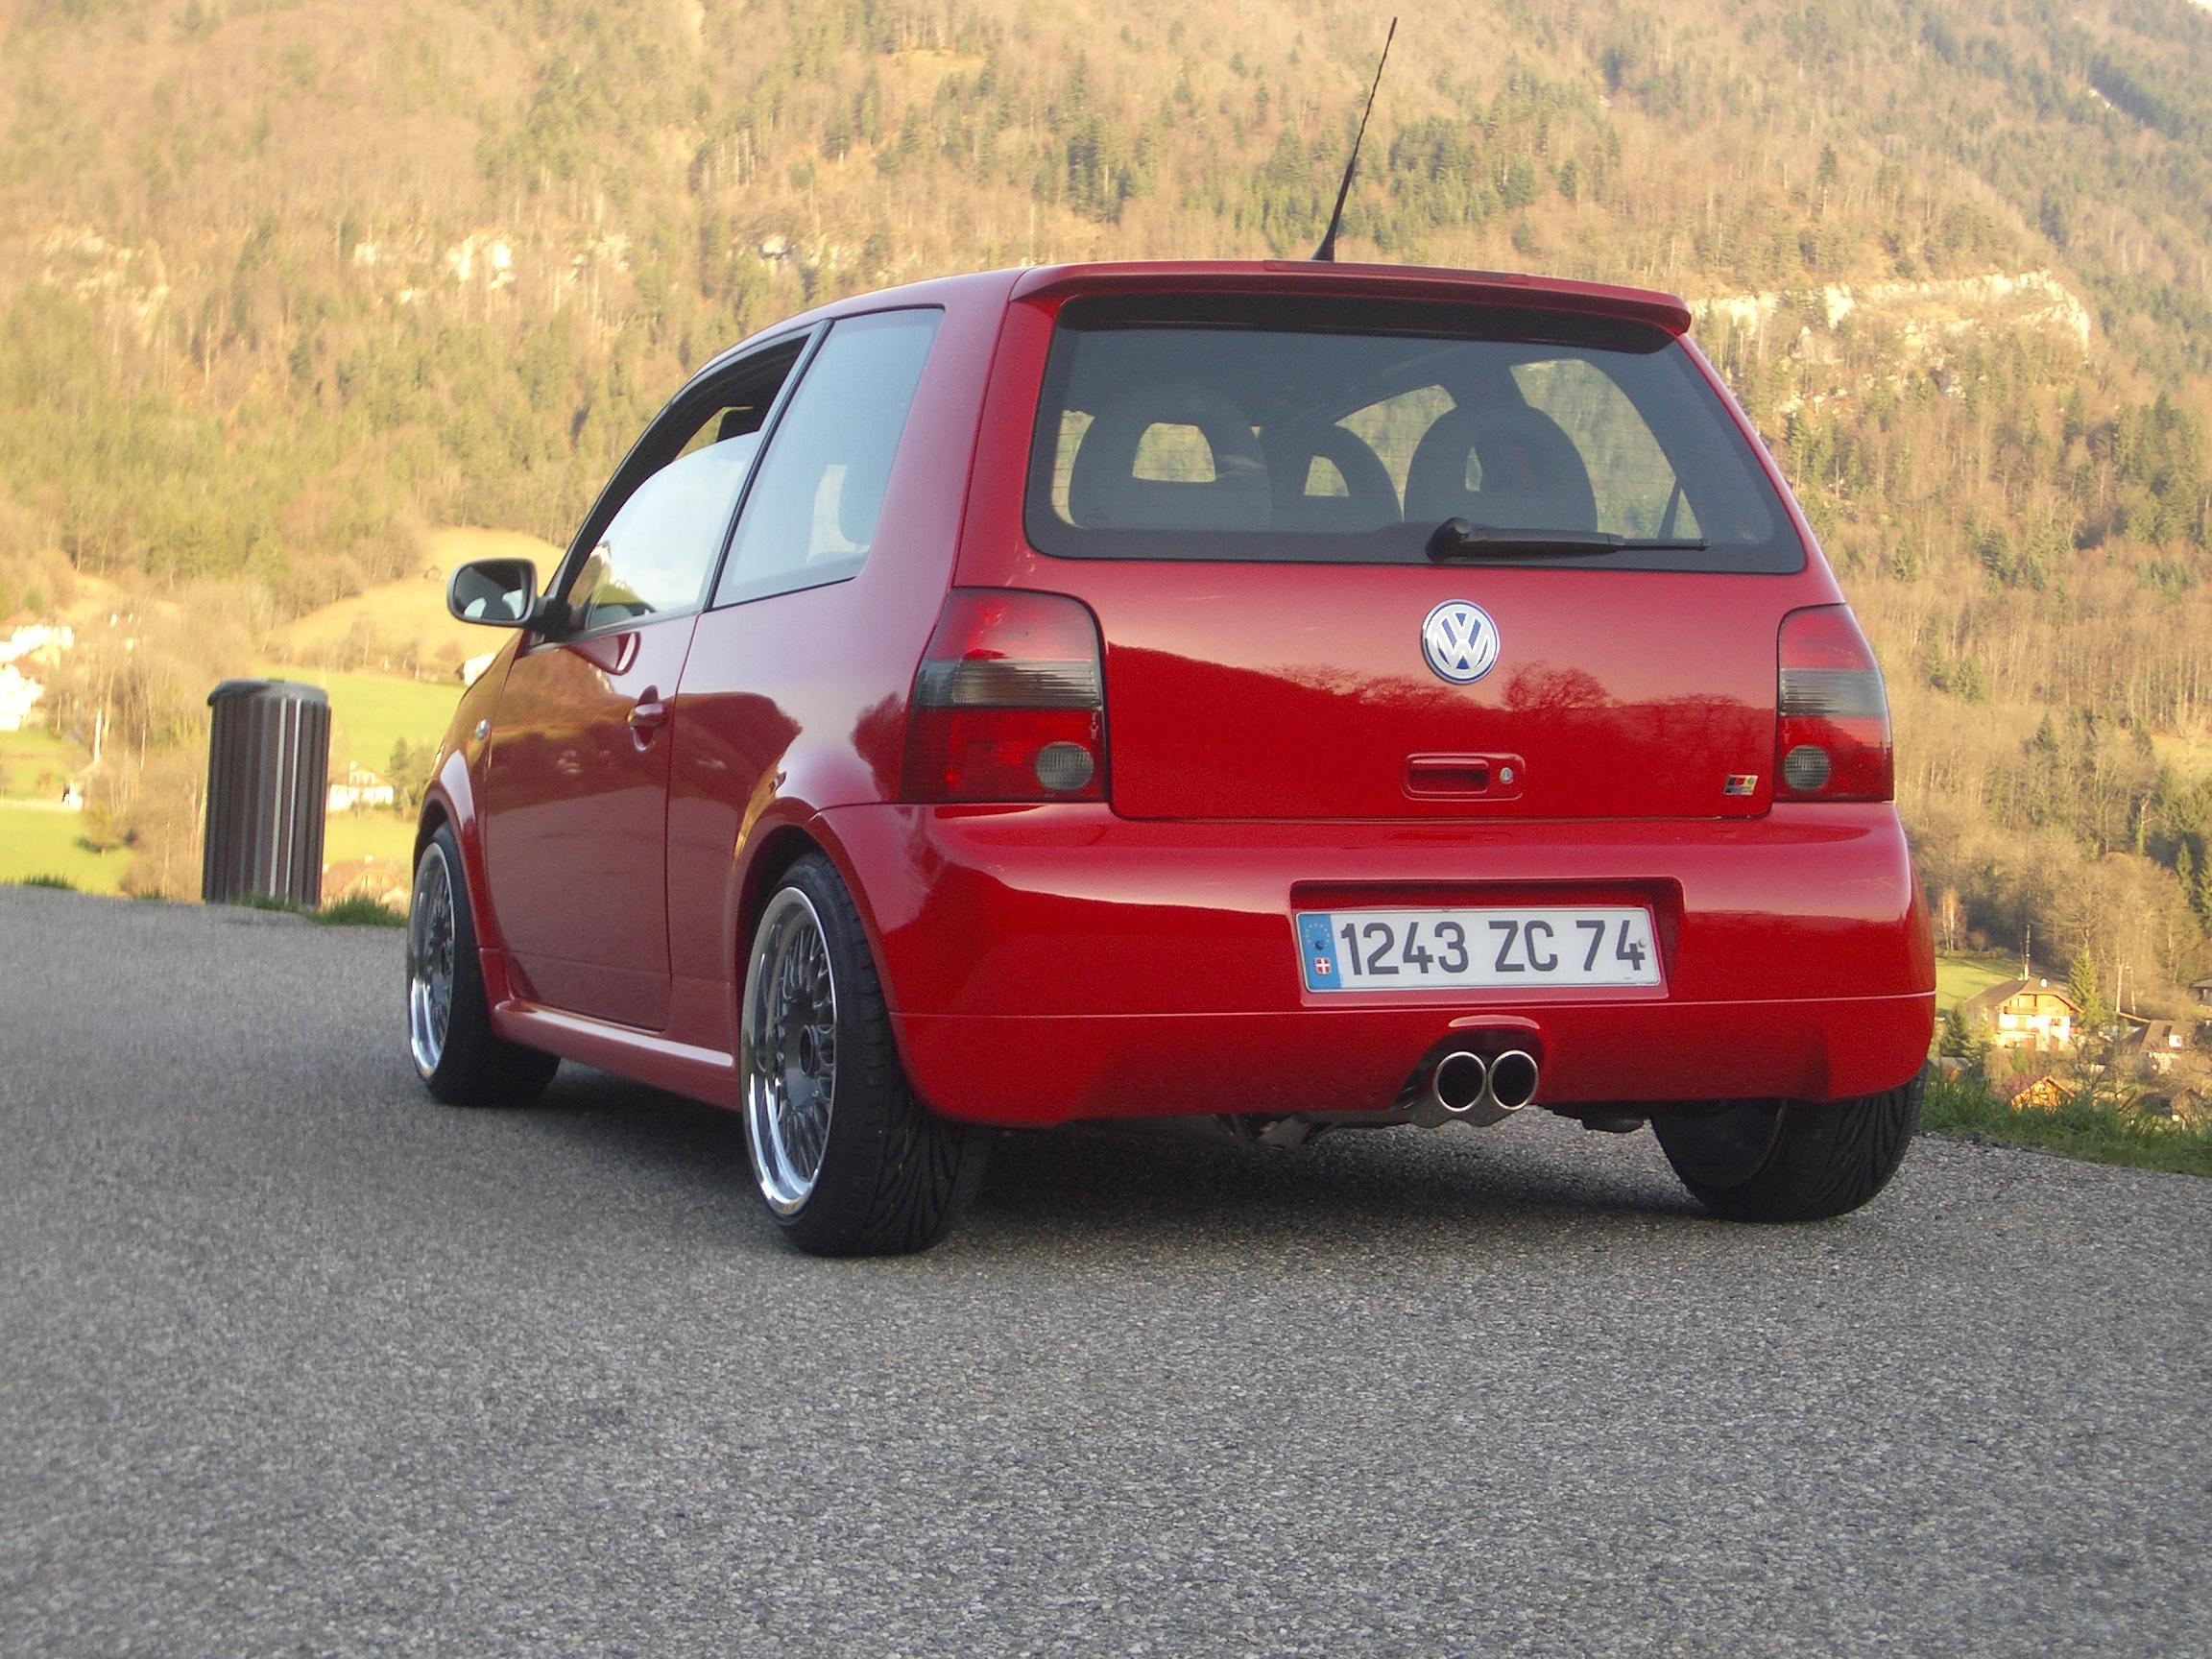 Vw lupo gti 1 6 16s 2001 autres v a g page 2 for Garage volkswagen valenciennes